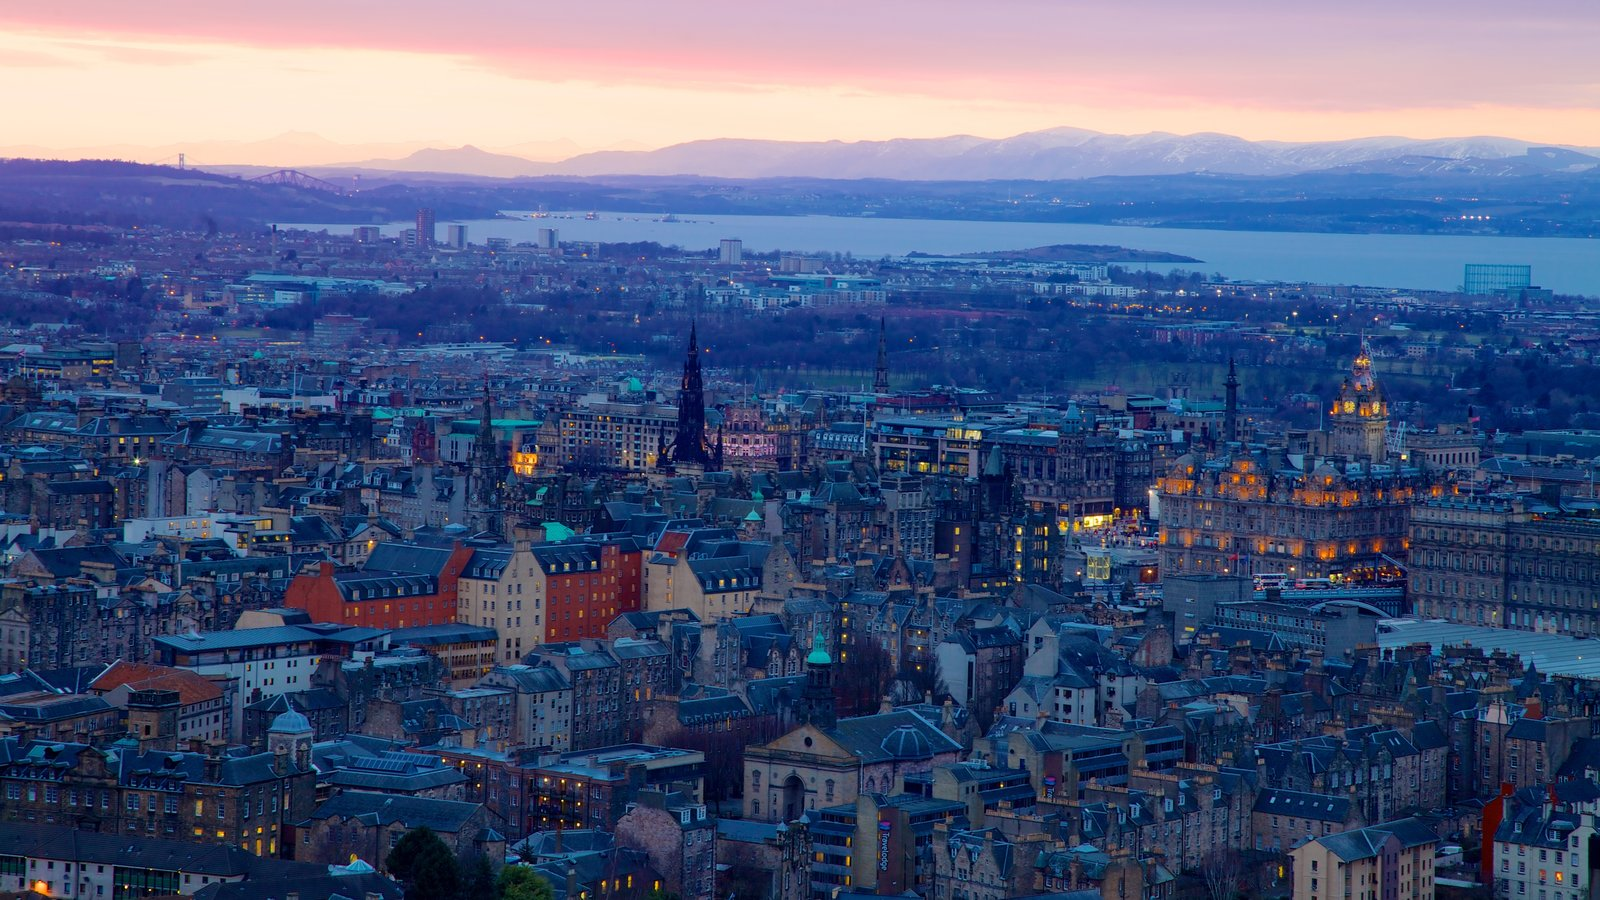 Arthur\\\'s Seat featuring a sunset and a city